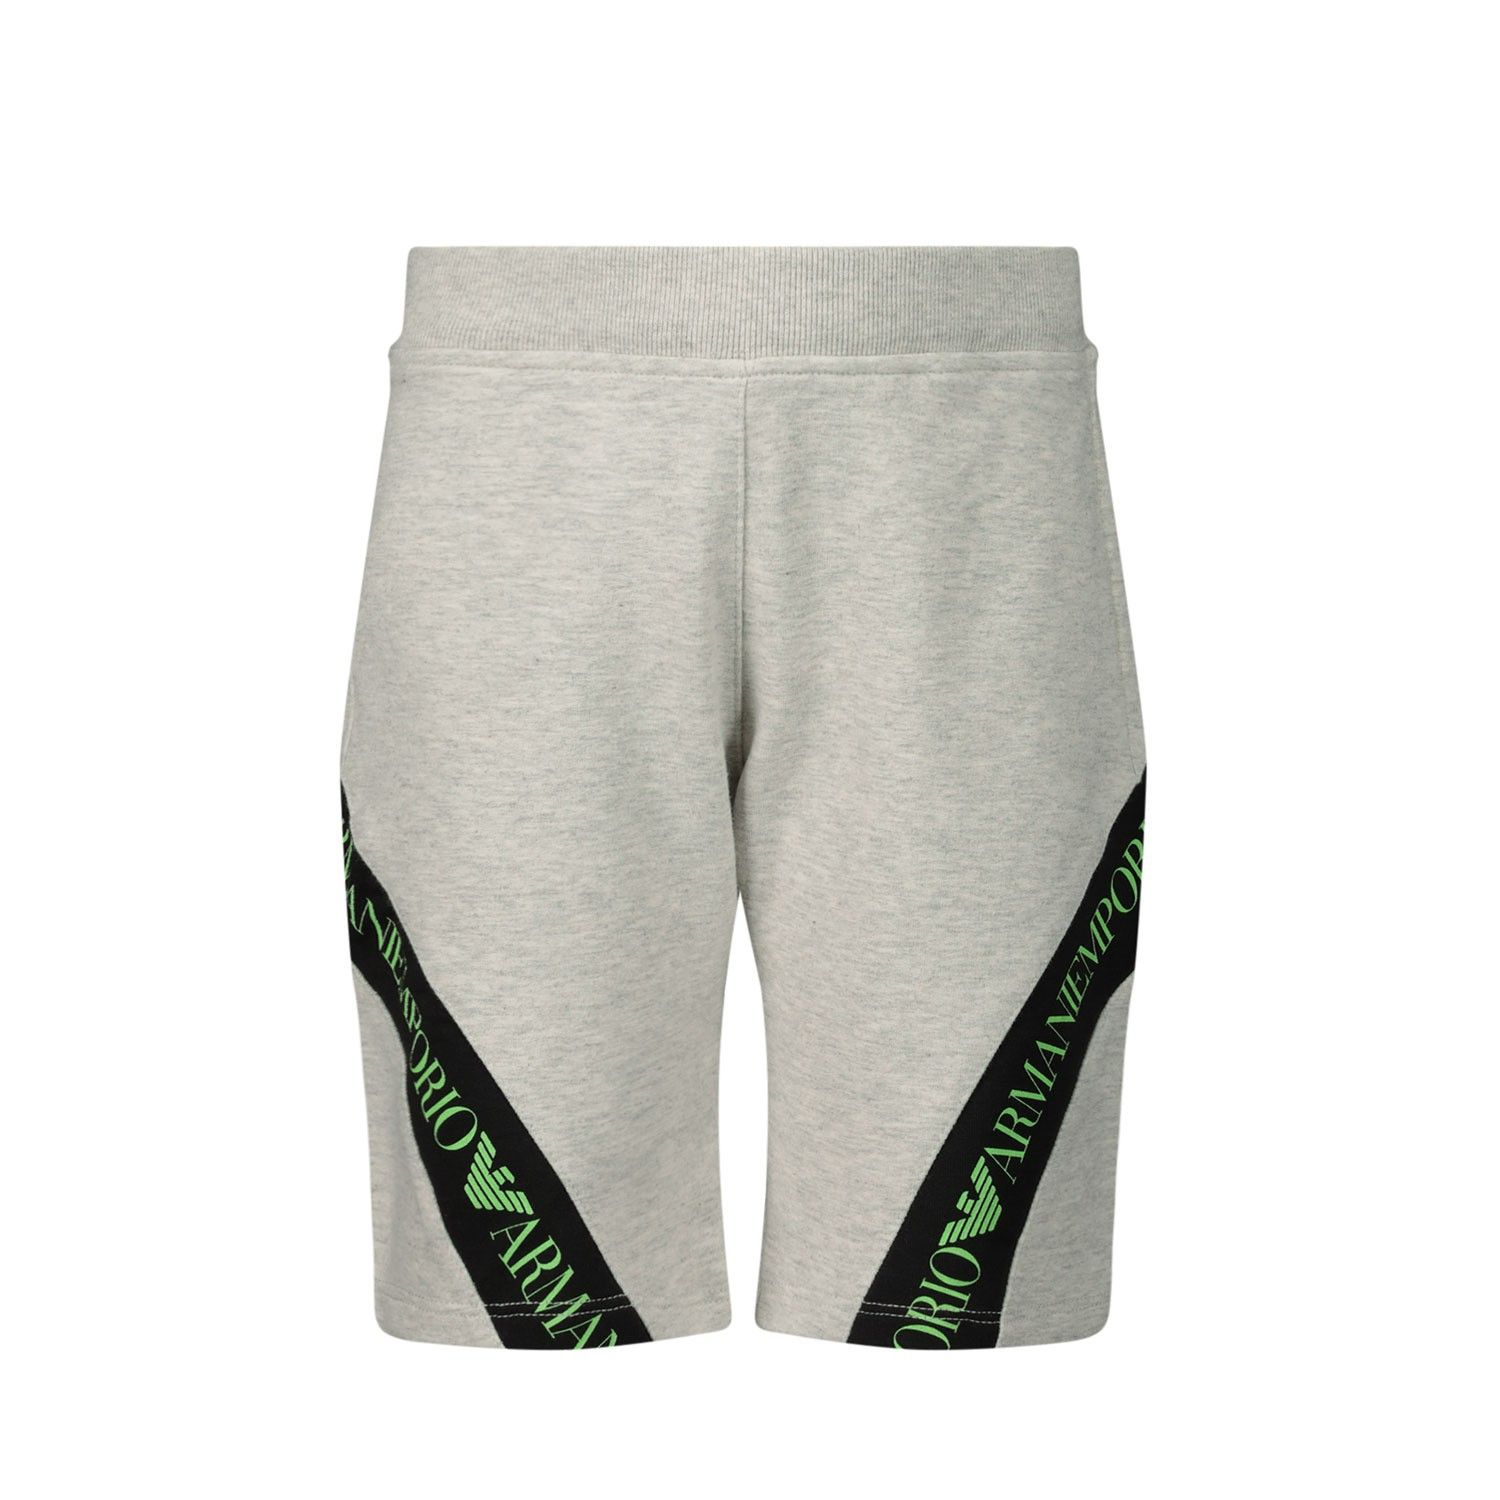 Picture of Armani 3HHS02 baby shorts light gray